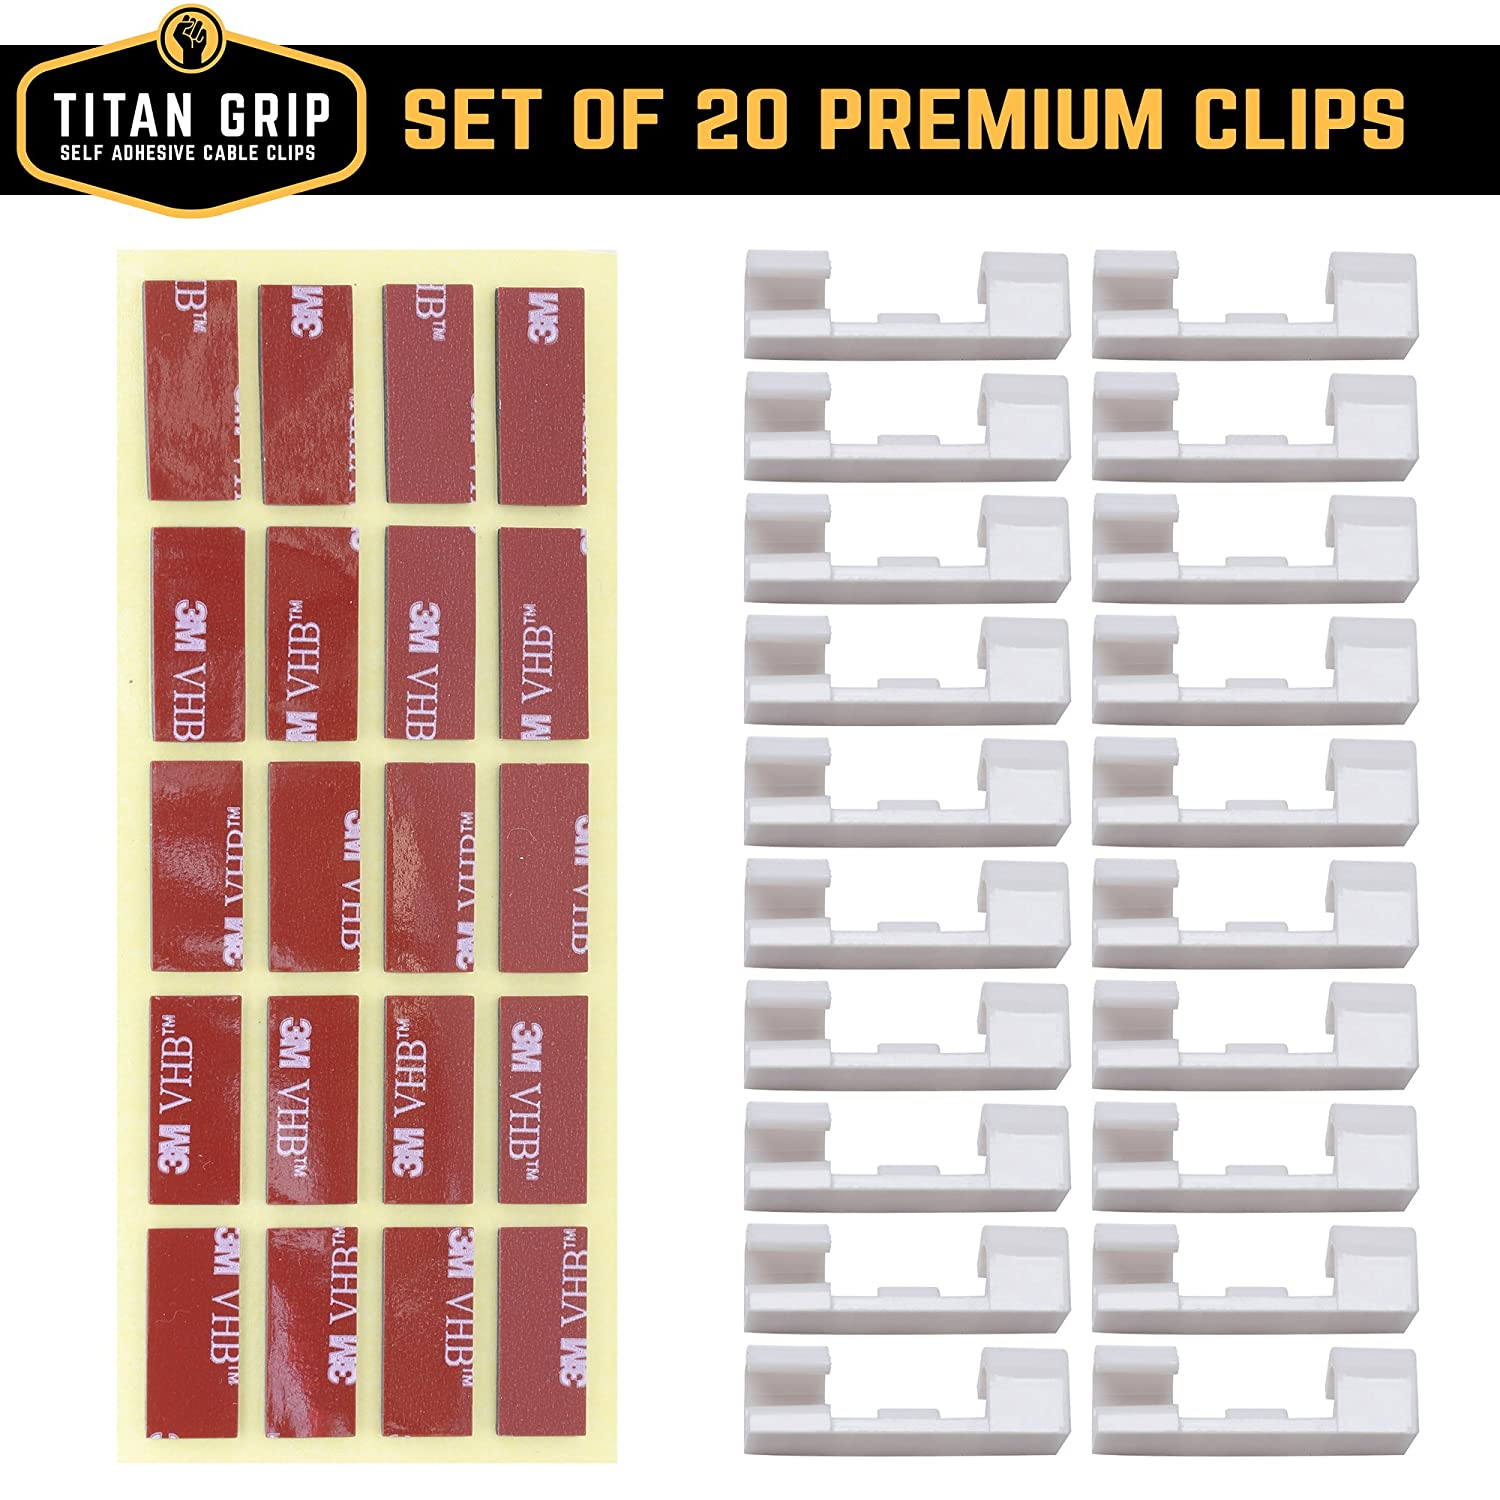 Cable Clips With Strong Self Adhesive Pads No Tools Post Back Questions Obviously Since Your Wiring Has Been Altered Required Organize Cords And Wires For A Clean Beautiful Home Or Office Set Of 20